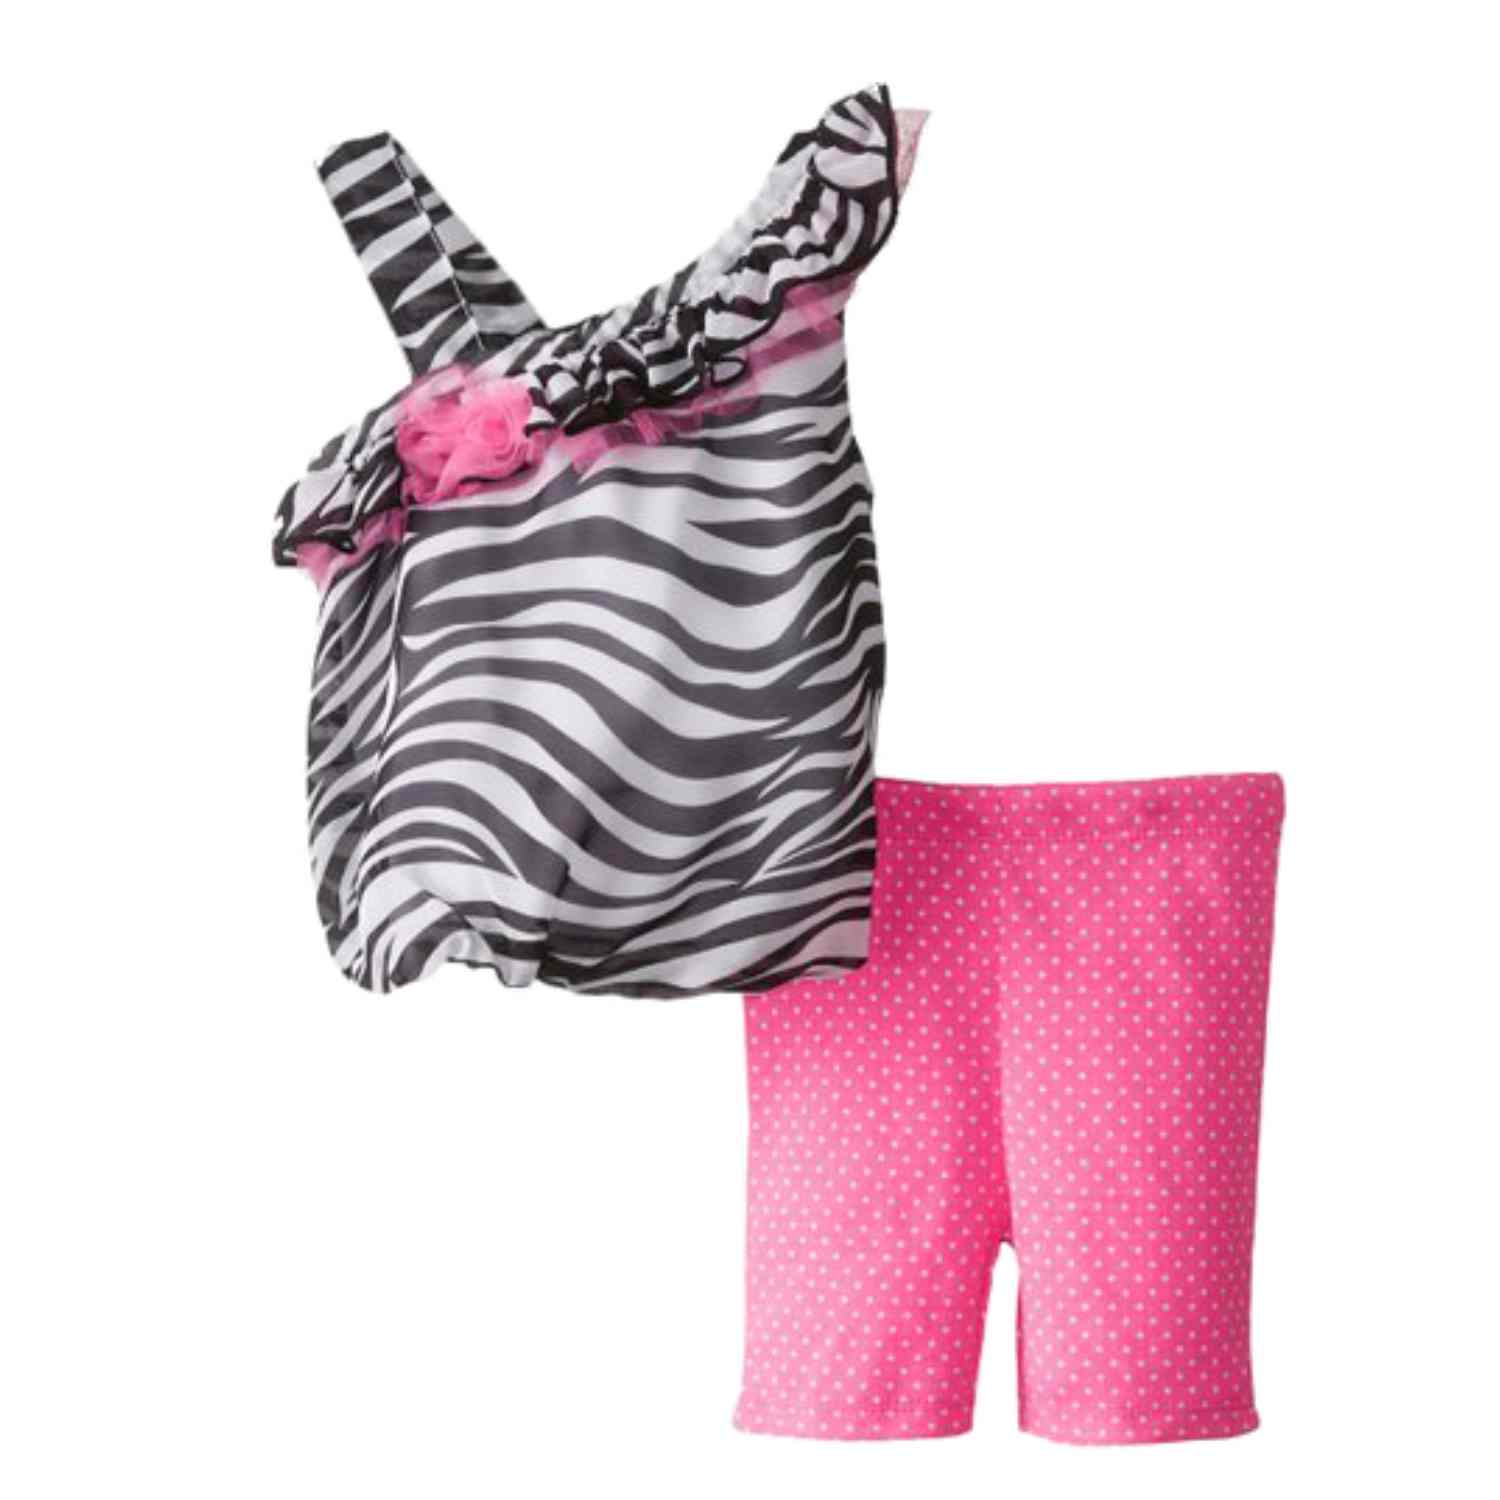 Baby Glam Infant Girls Zebra Print Bubble Top Pink Leggings Outfit 2 PC Set